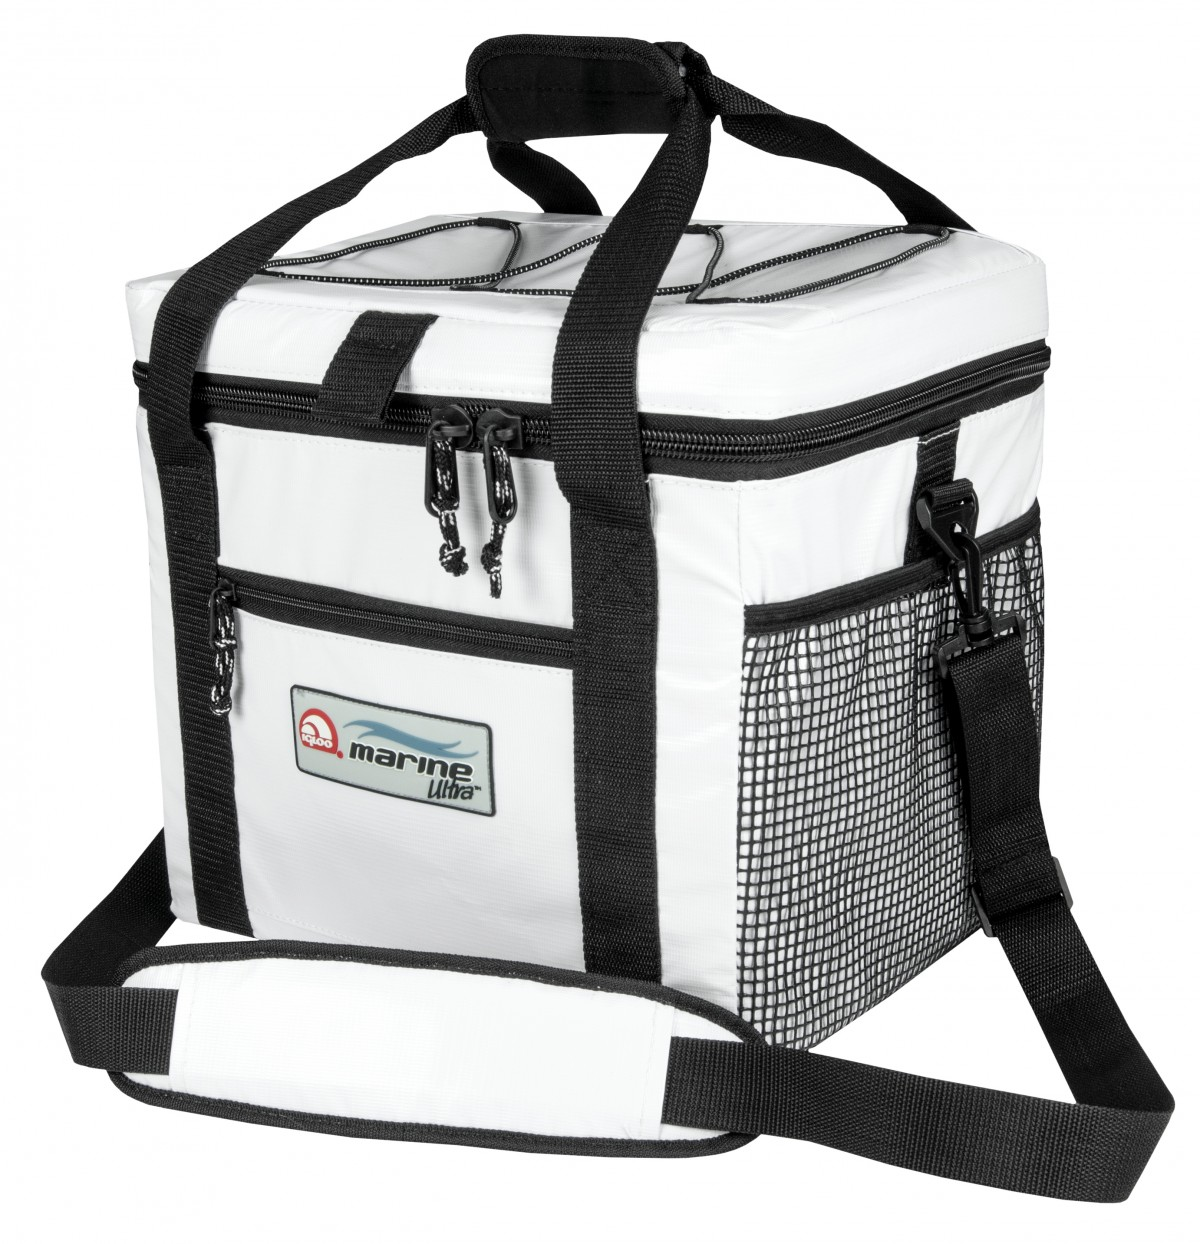 Softshell cooler bags